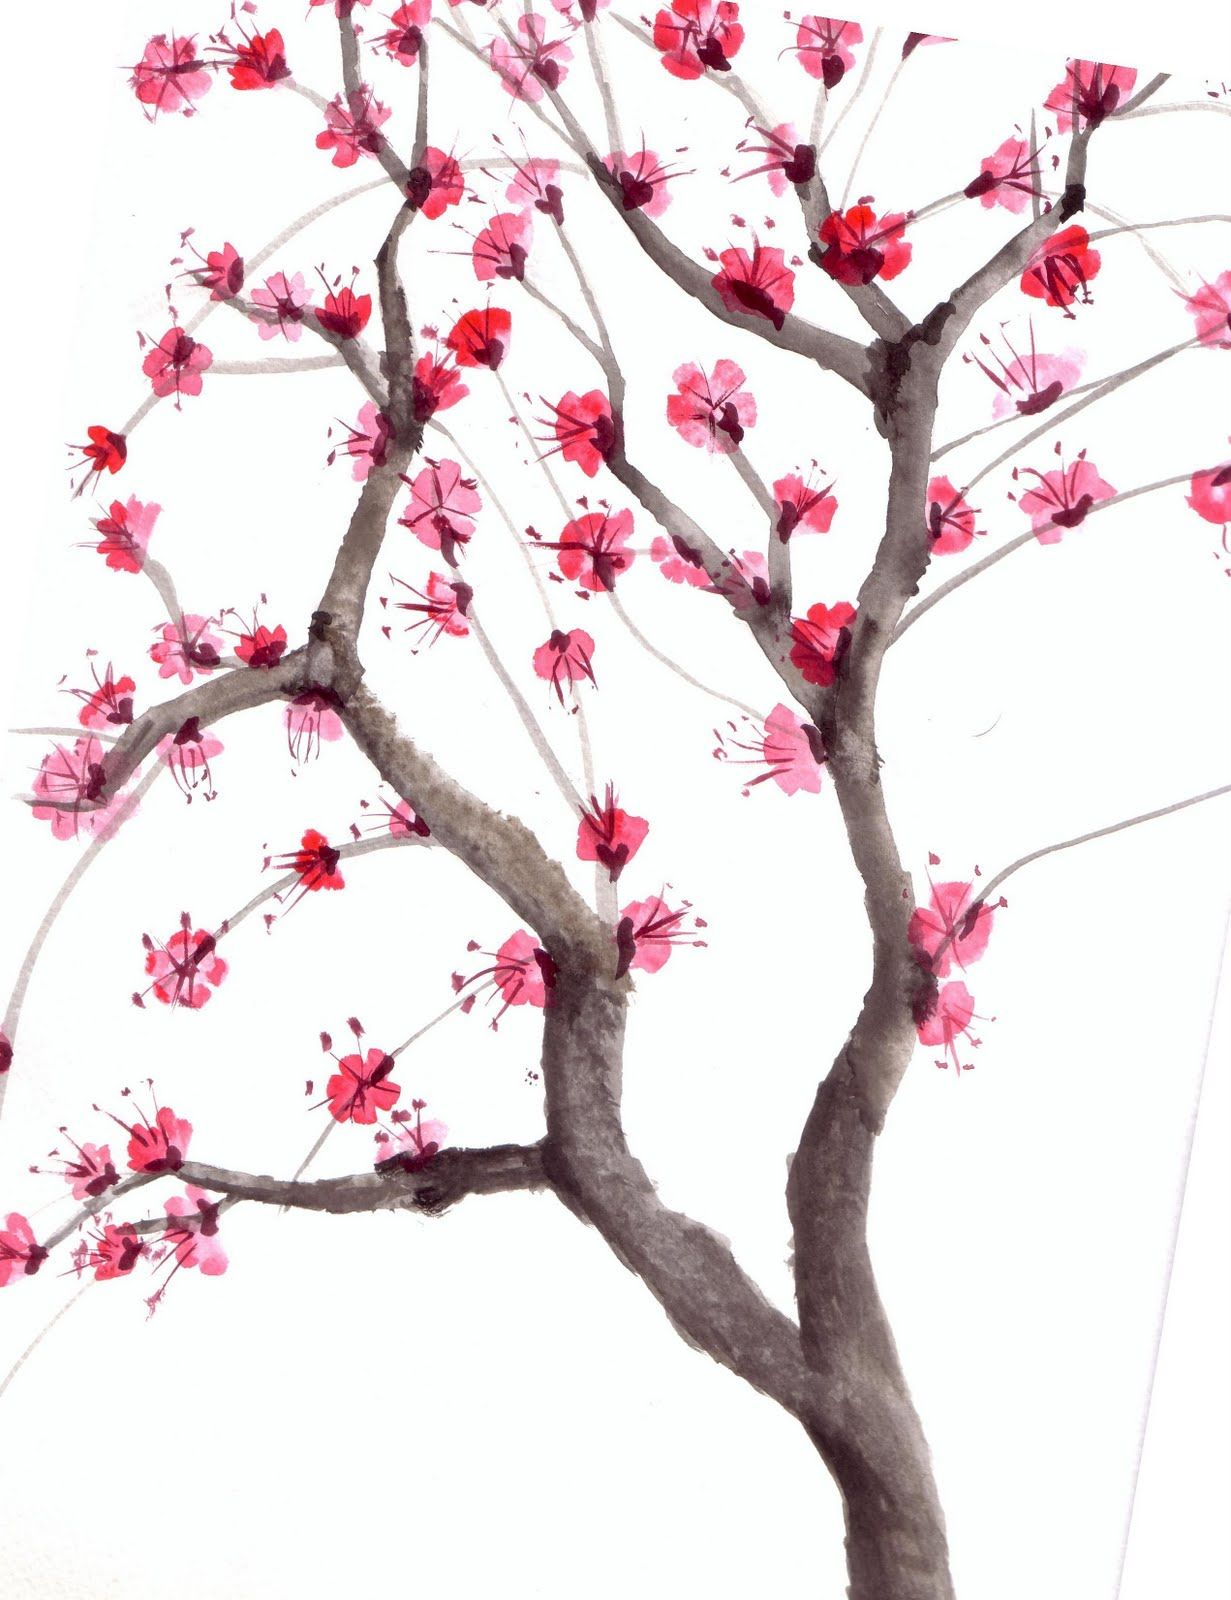 diagram the parts of cherry blossom tree reflection and refraction lab watercolor art graphic design